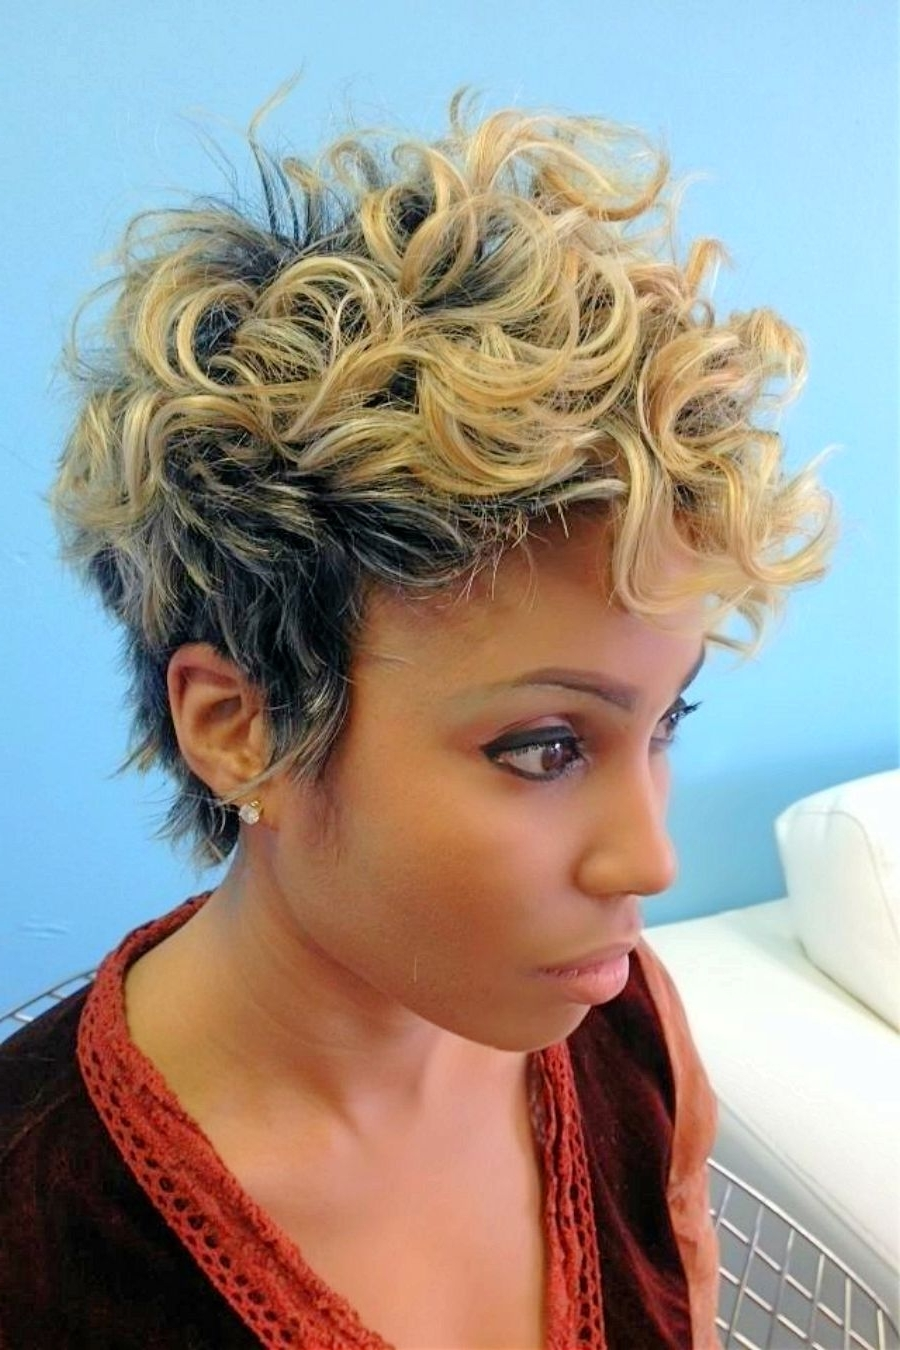 Short Haircuts For Women | Be Mod Inside Most Current Hipster Pixie Hairstyles (View 8 of 15)